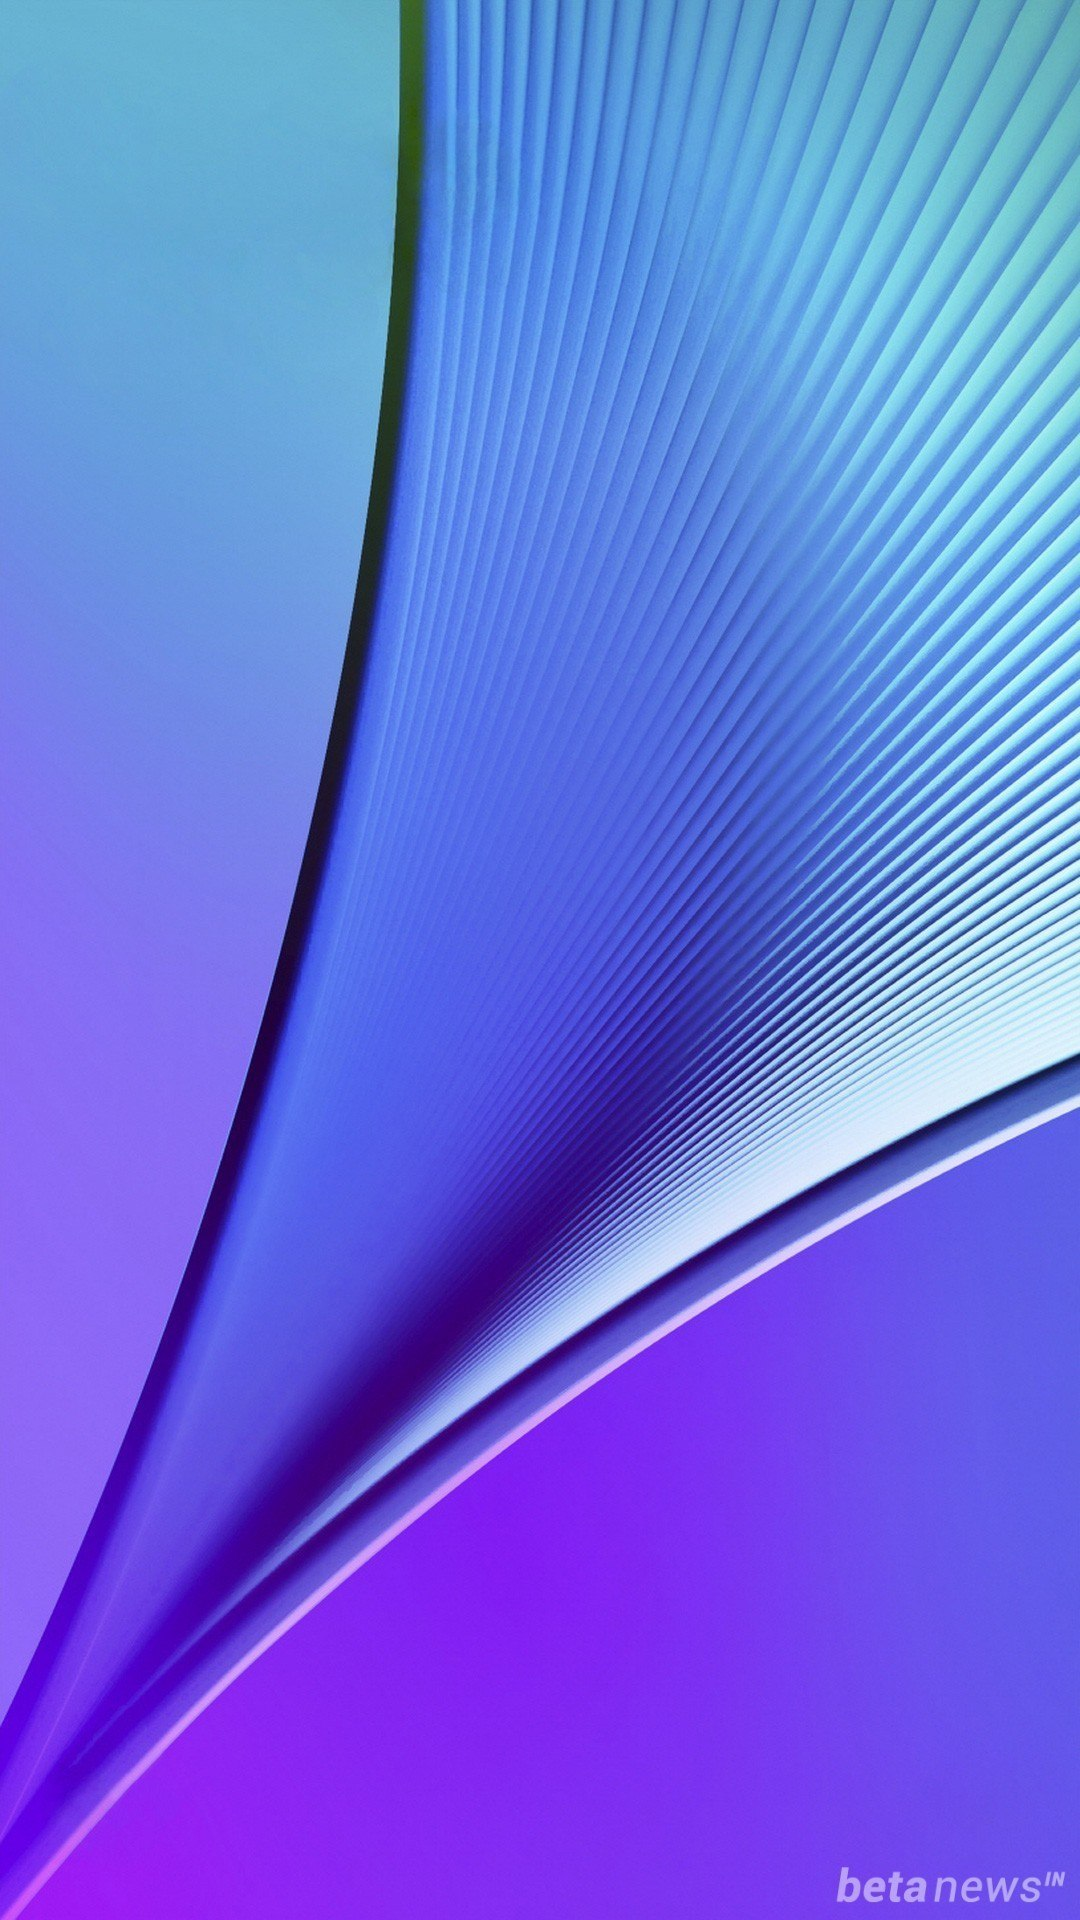 samsung wallpaper on5: Papel De Parede Galaxy J5 TM84